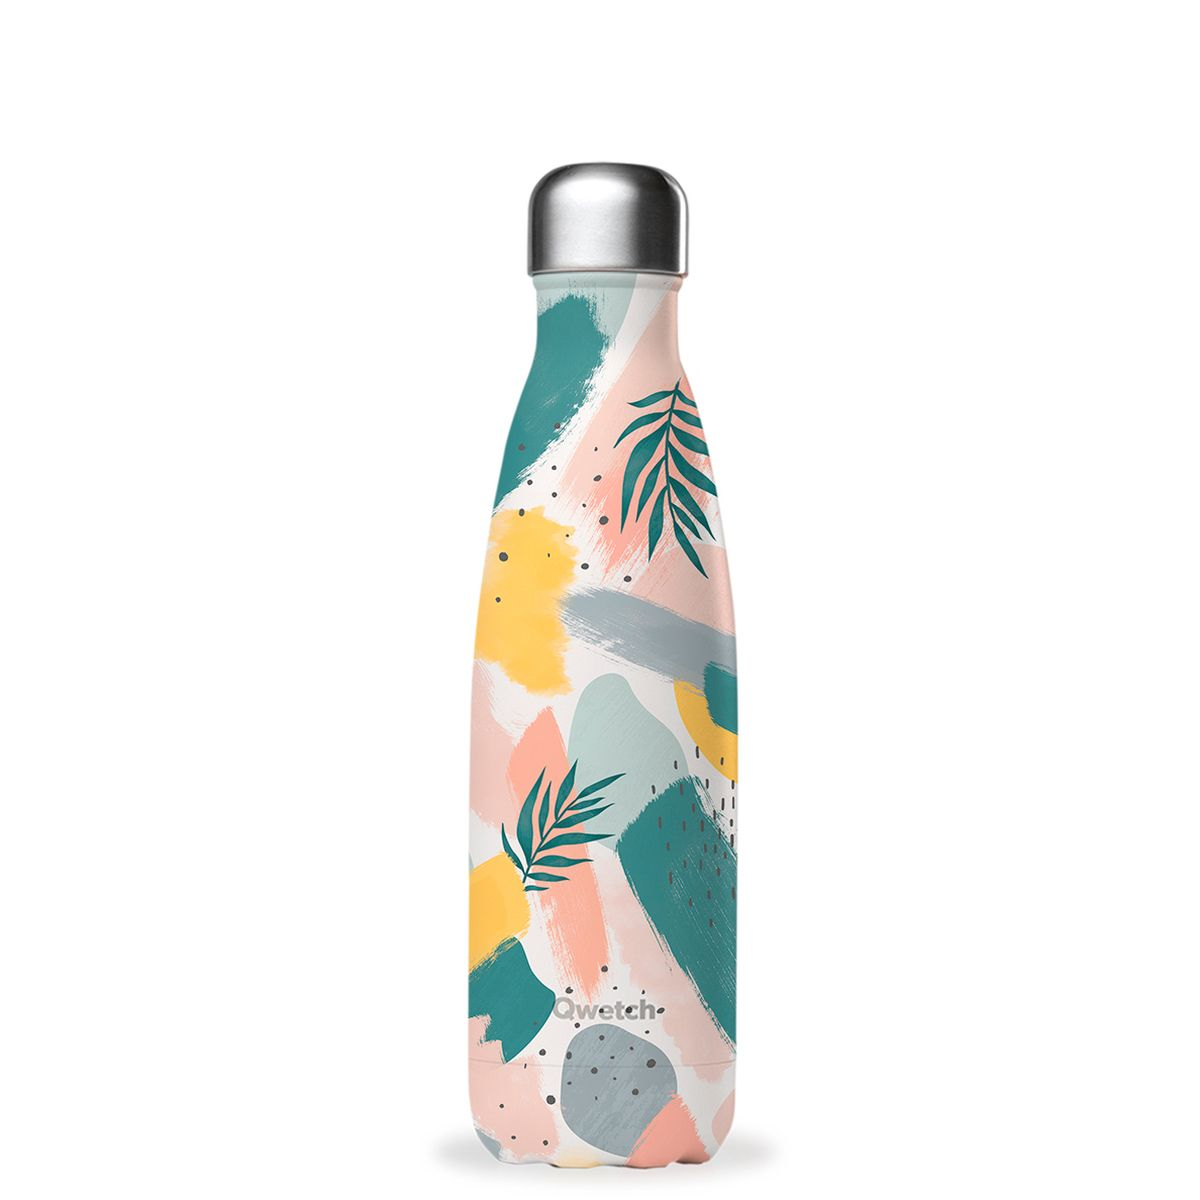 Bouteille isotherme inox 500ml Rhapsody - Qwetch